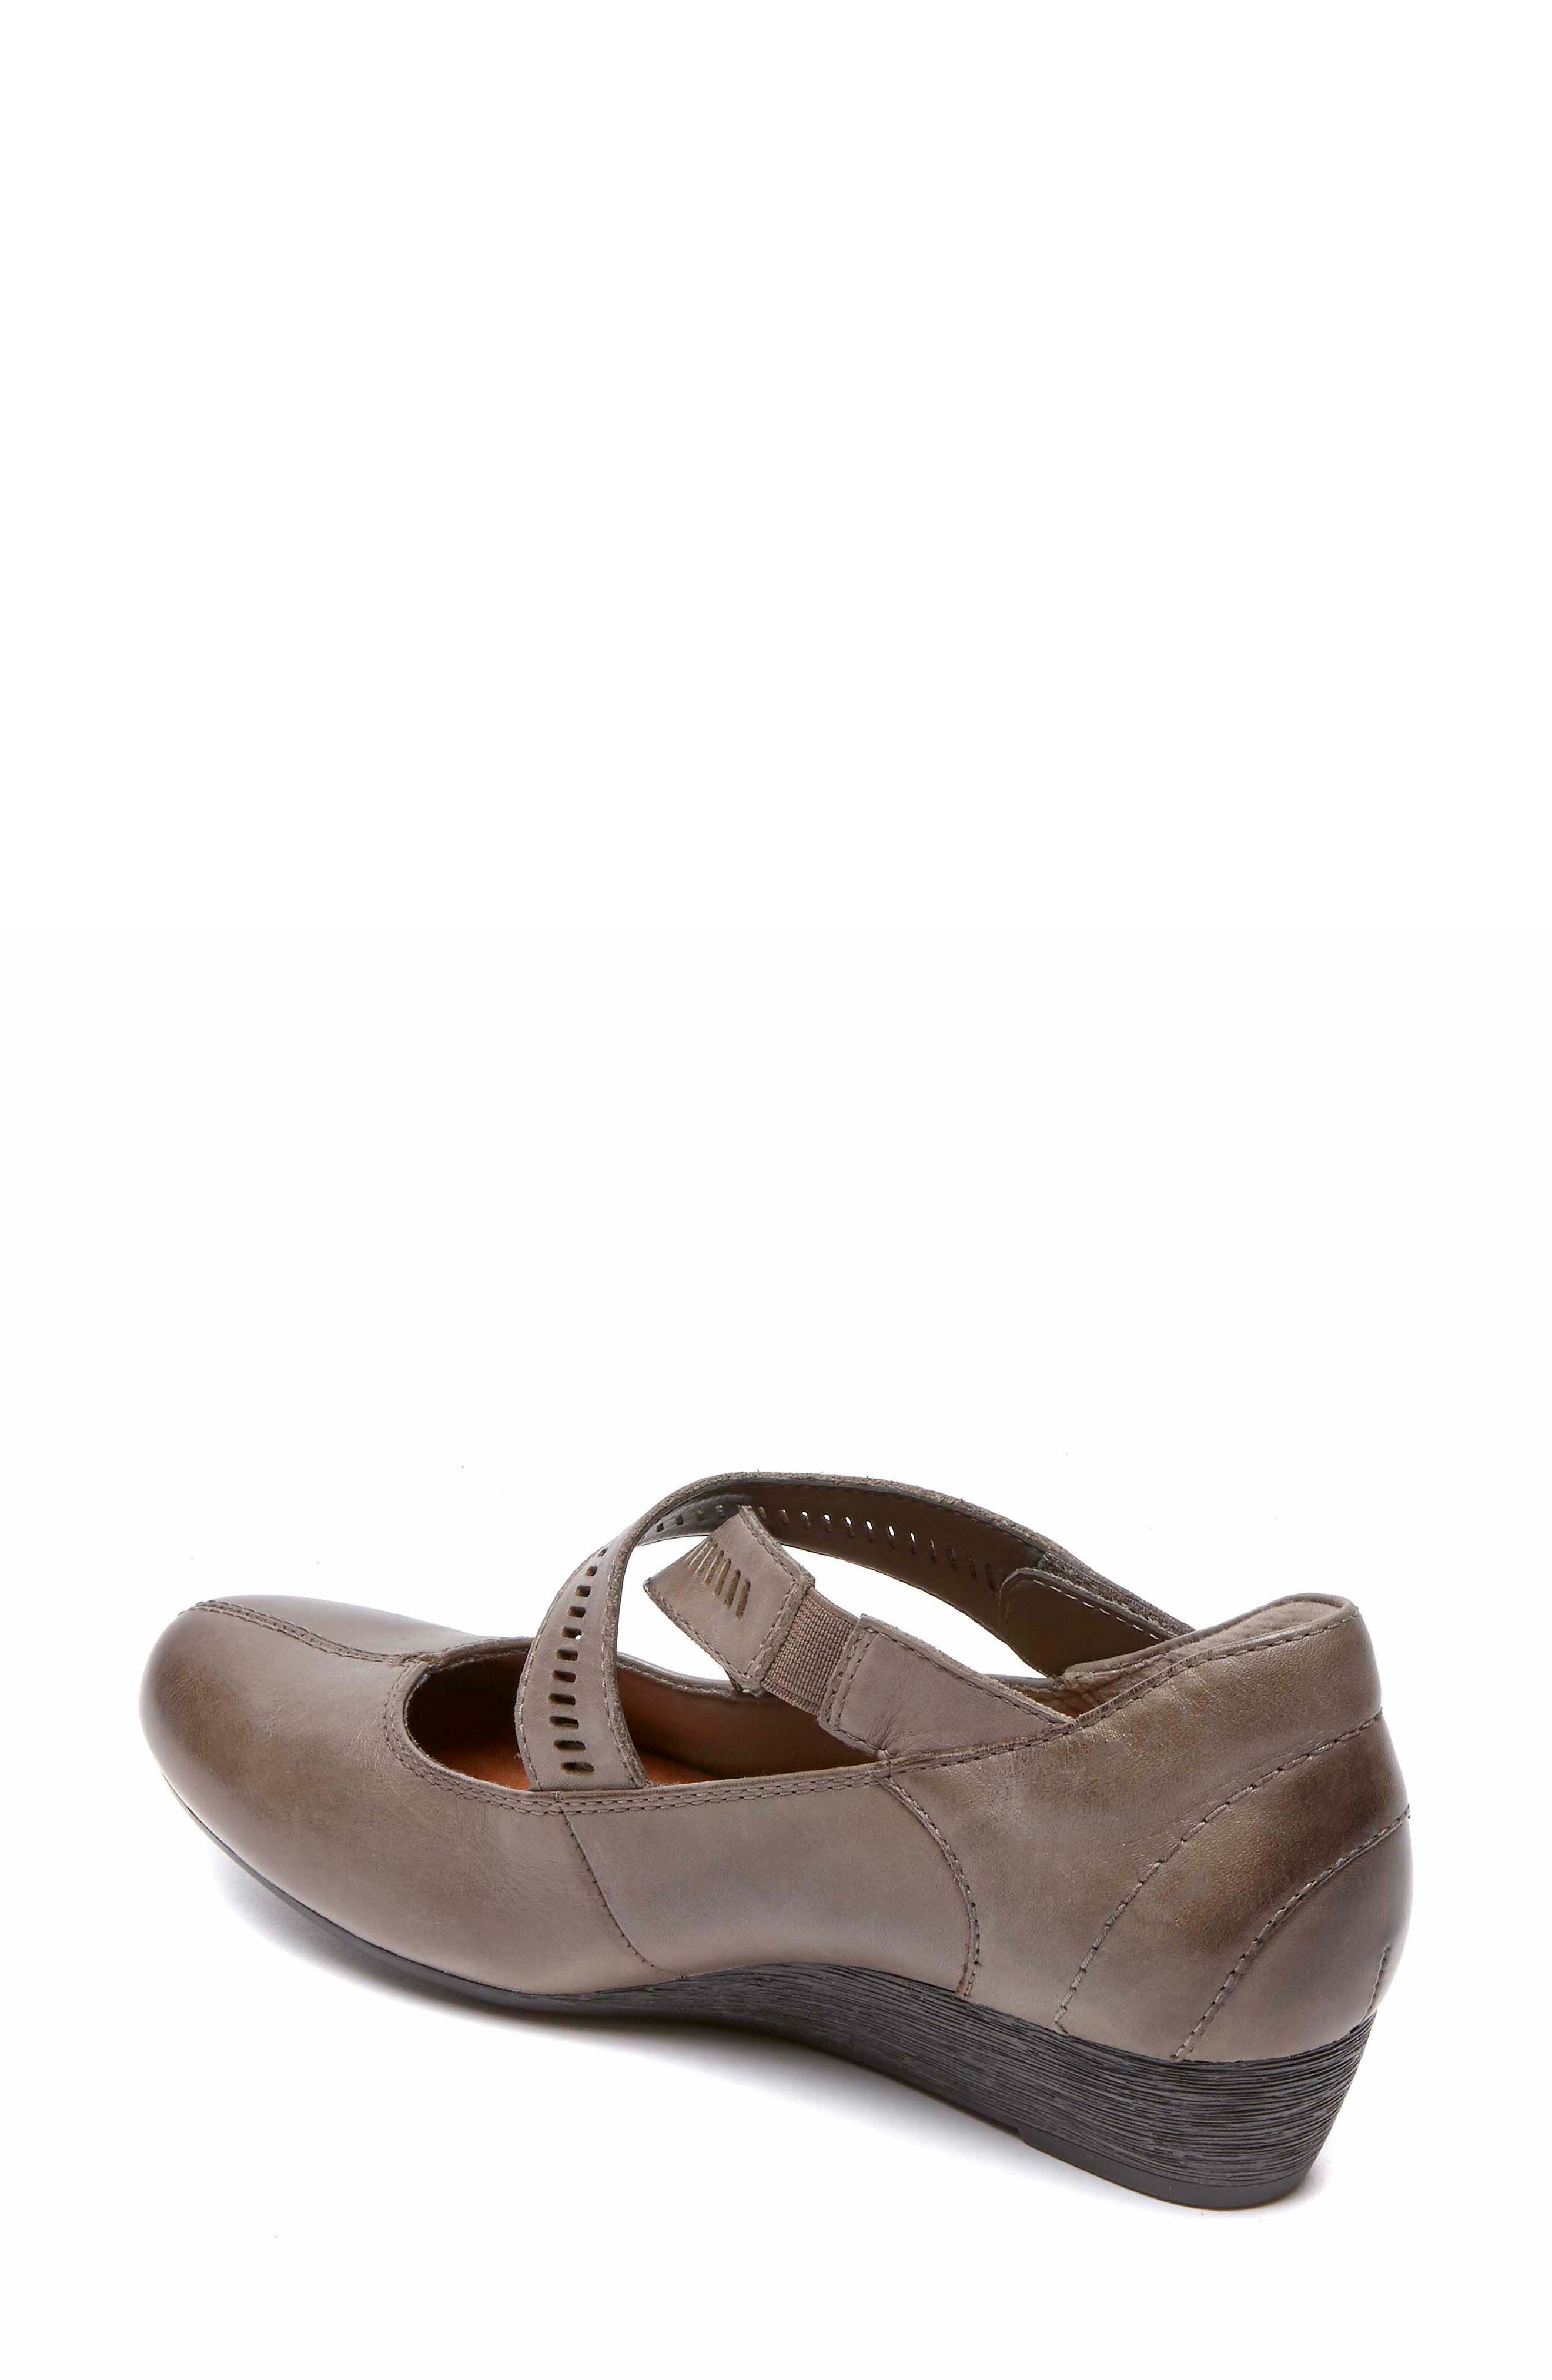 'Janet' Mary Jane Wedge,                             Alternate thumbnail 7, color,